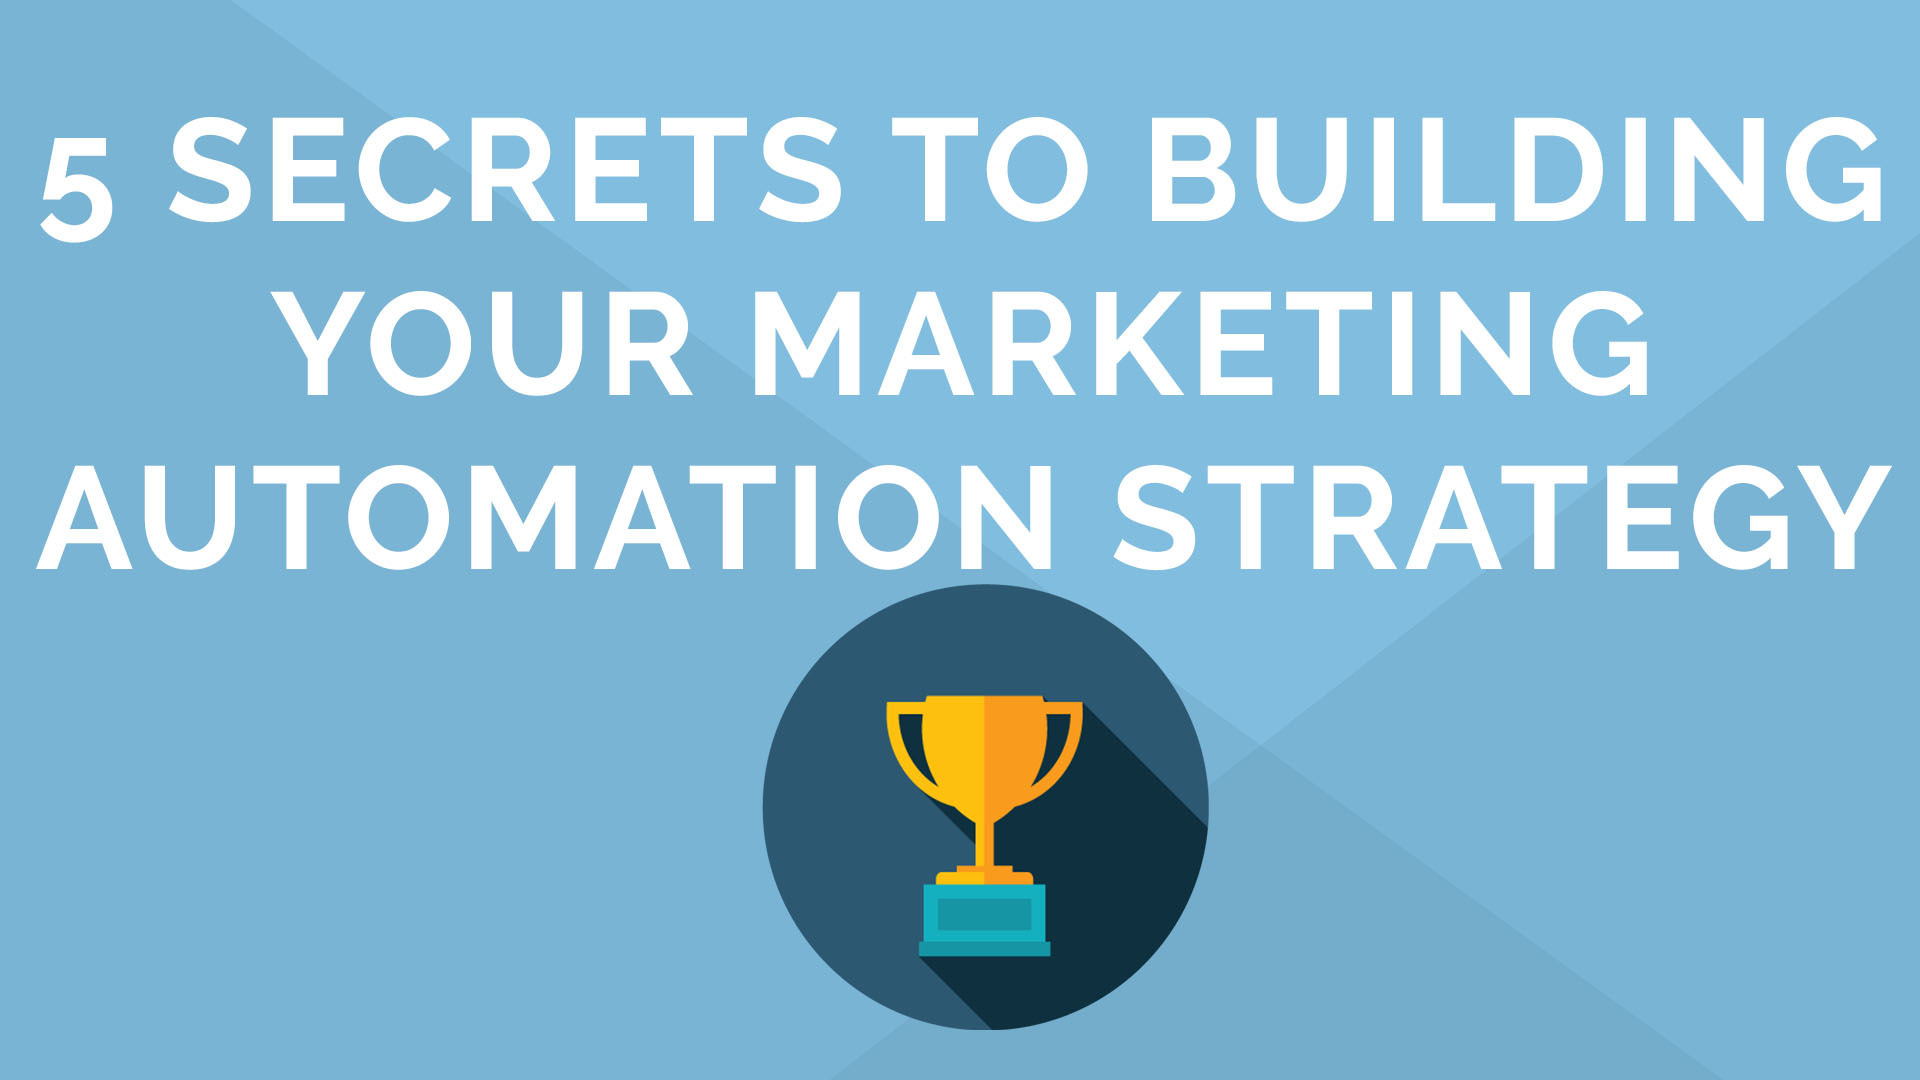 5 Secrets to building your marketing automation strategy in 15 minutes